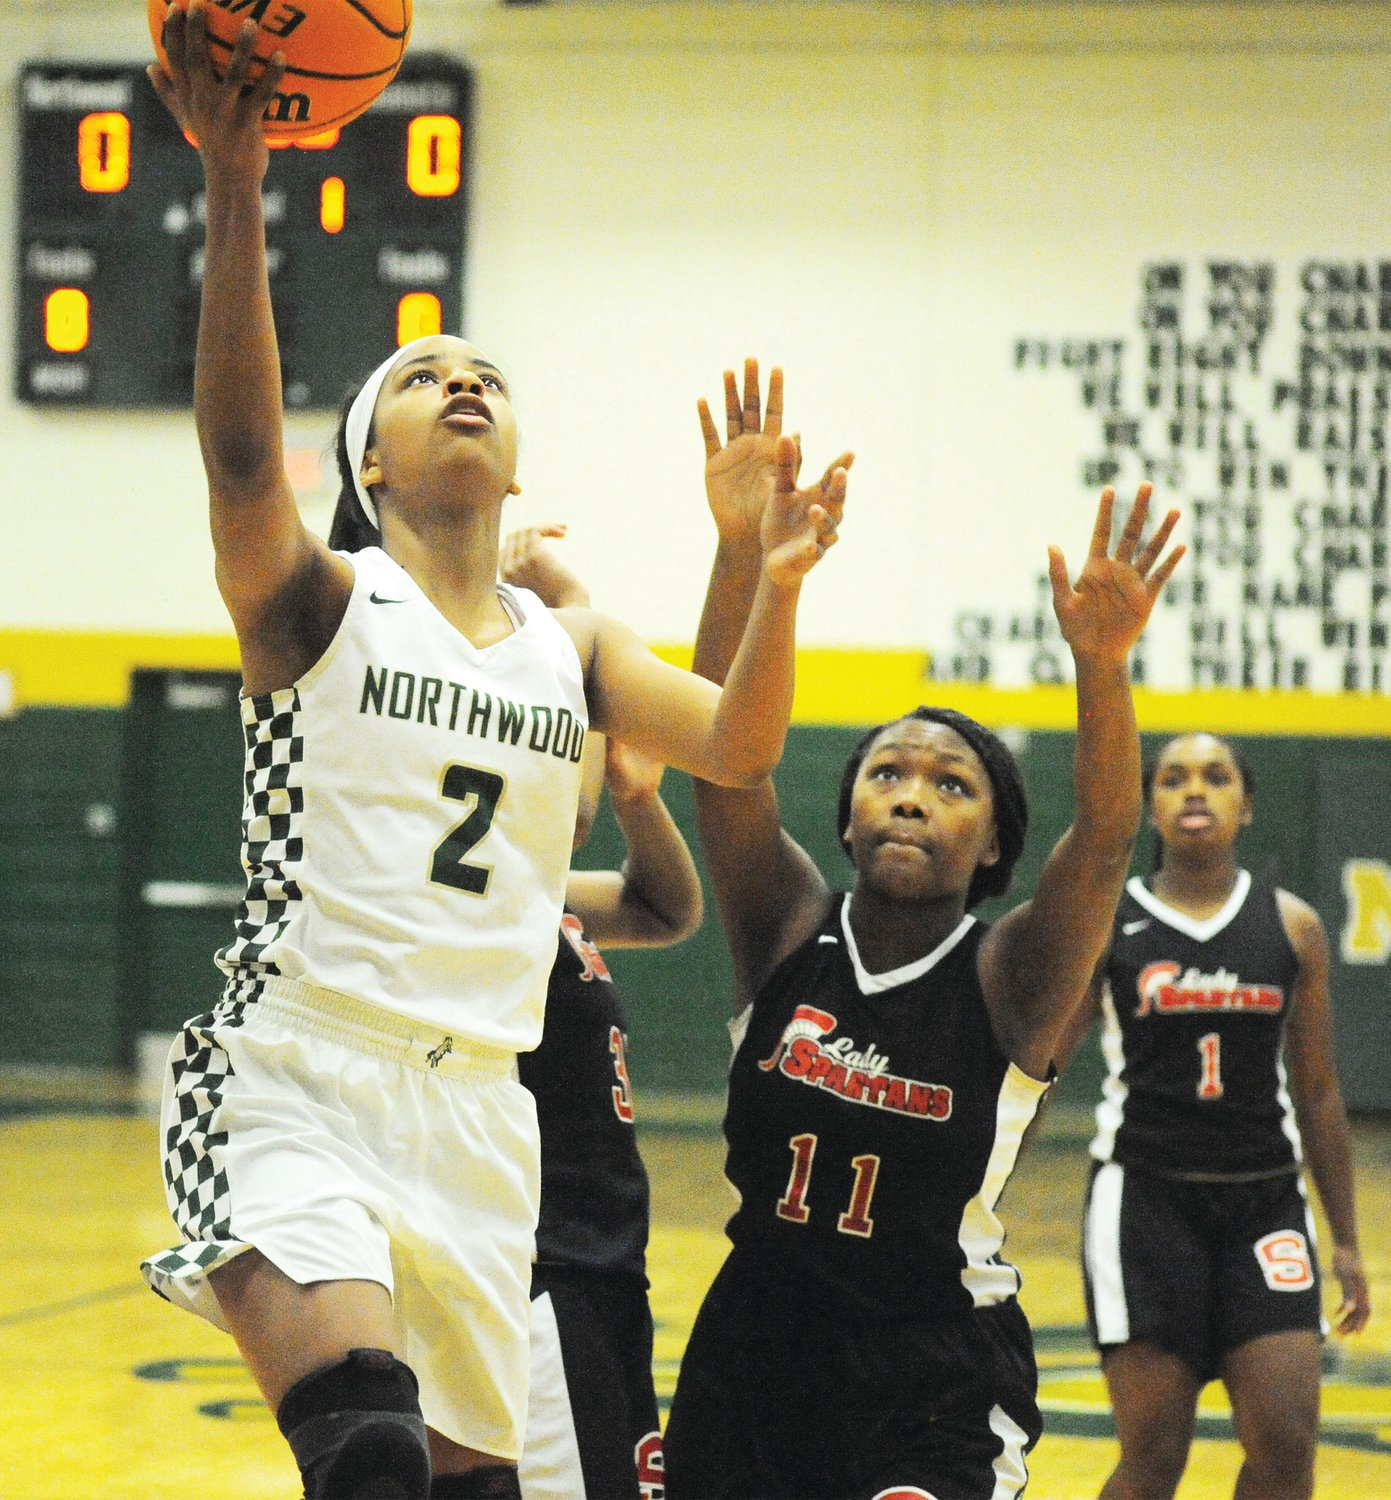 Northwood's Rae McClarty gets past the Southern Durham defense of Amyah Ingram (11) and Taylor Robinson in the first game of 2020 for both teams in Pittsboro last Friday. Northwood won the game 43-35.